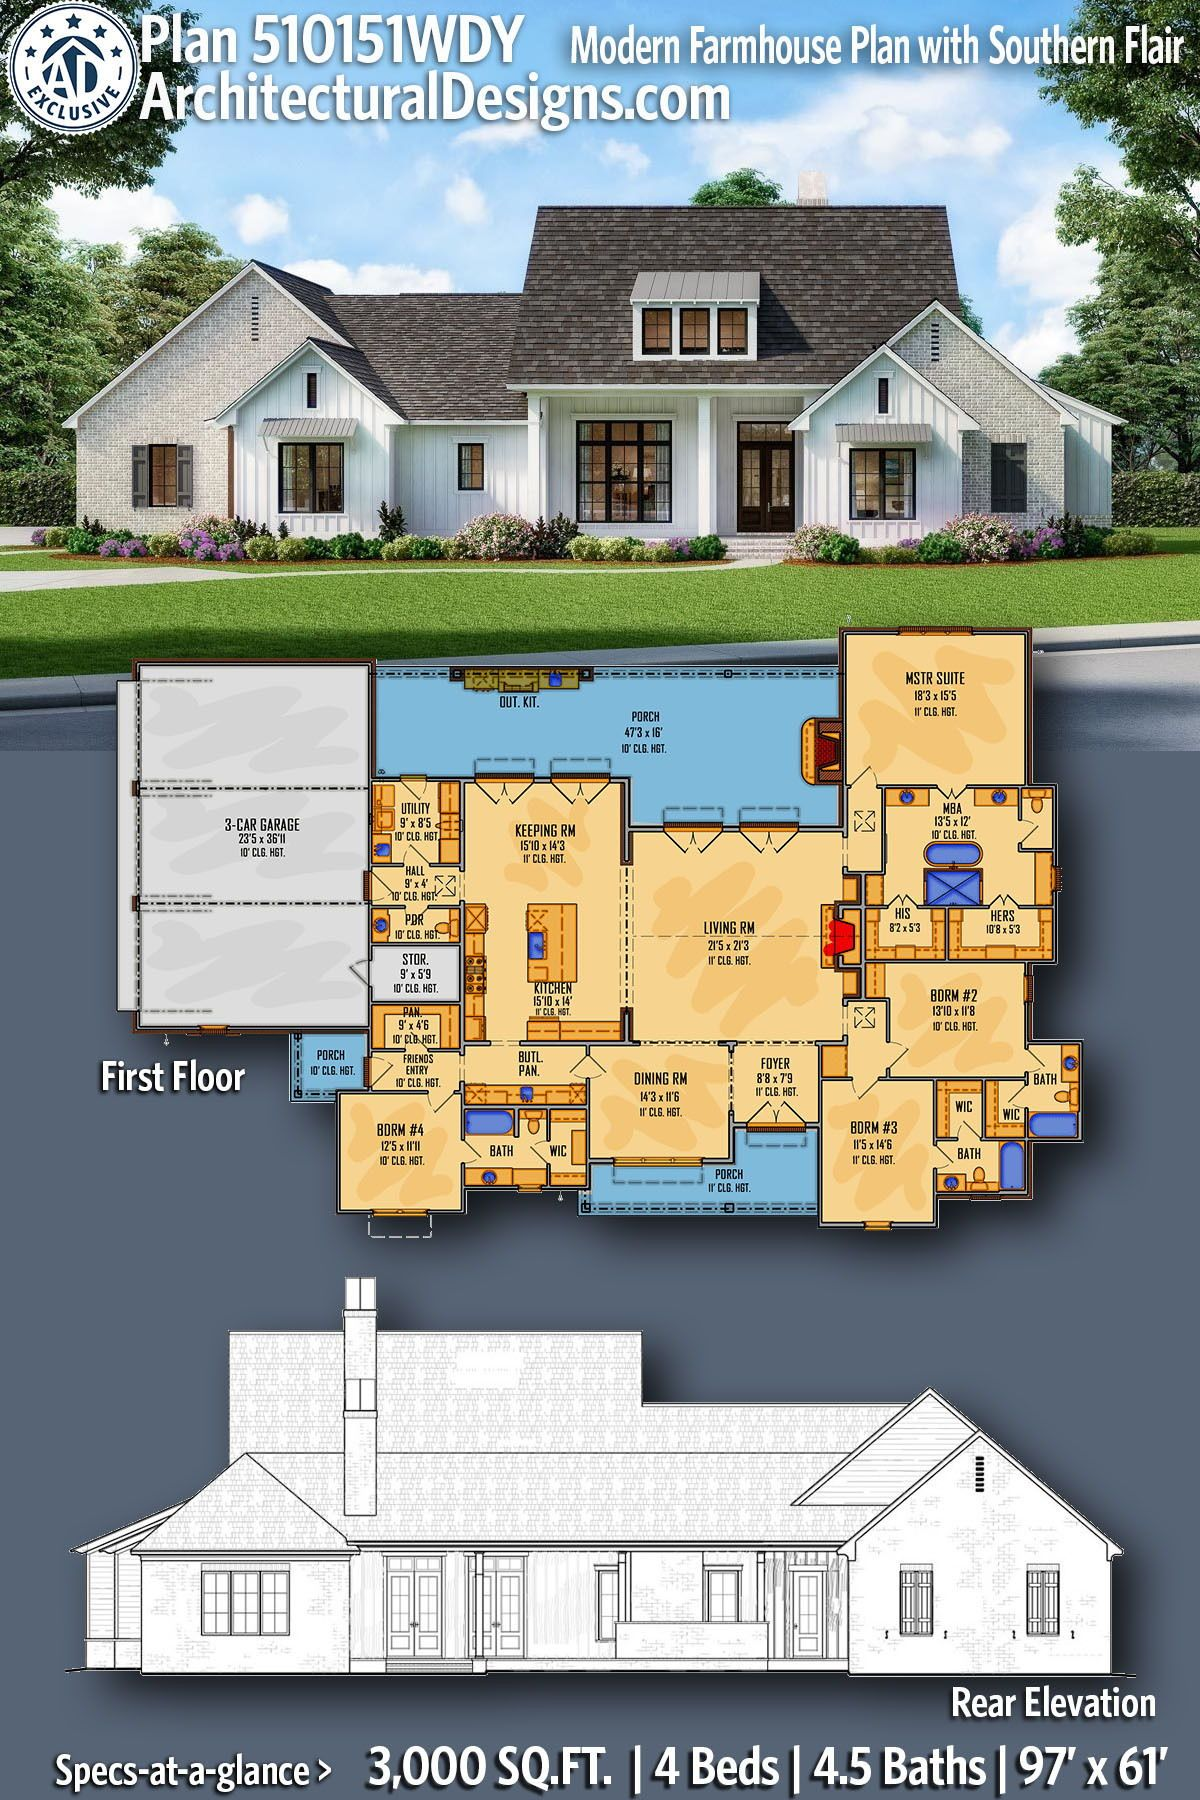 Plan 510151wdy Modern Farmhouse Plan With Southern Flair In 2021 Modern Farmhouse Plans French Country House Plans House Plans Farmhouse